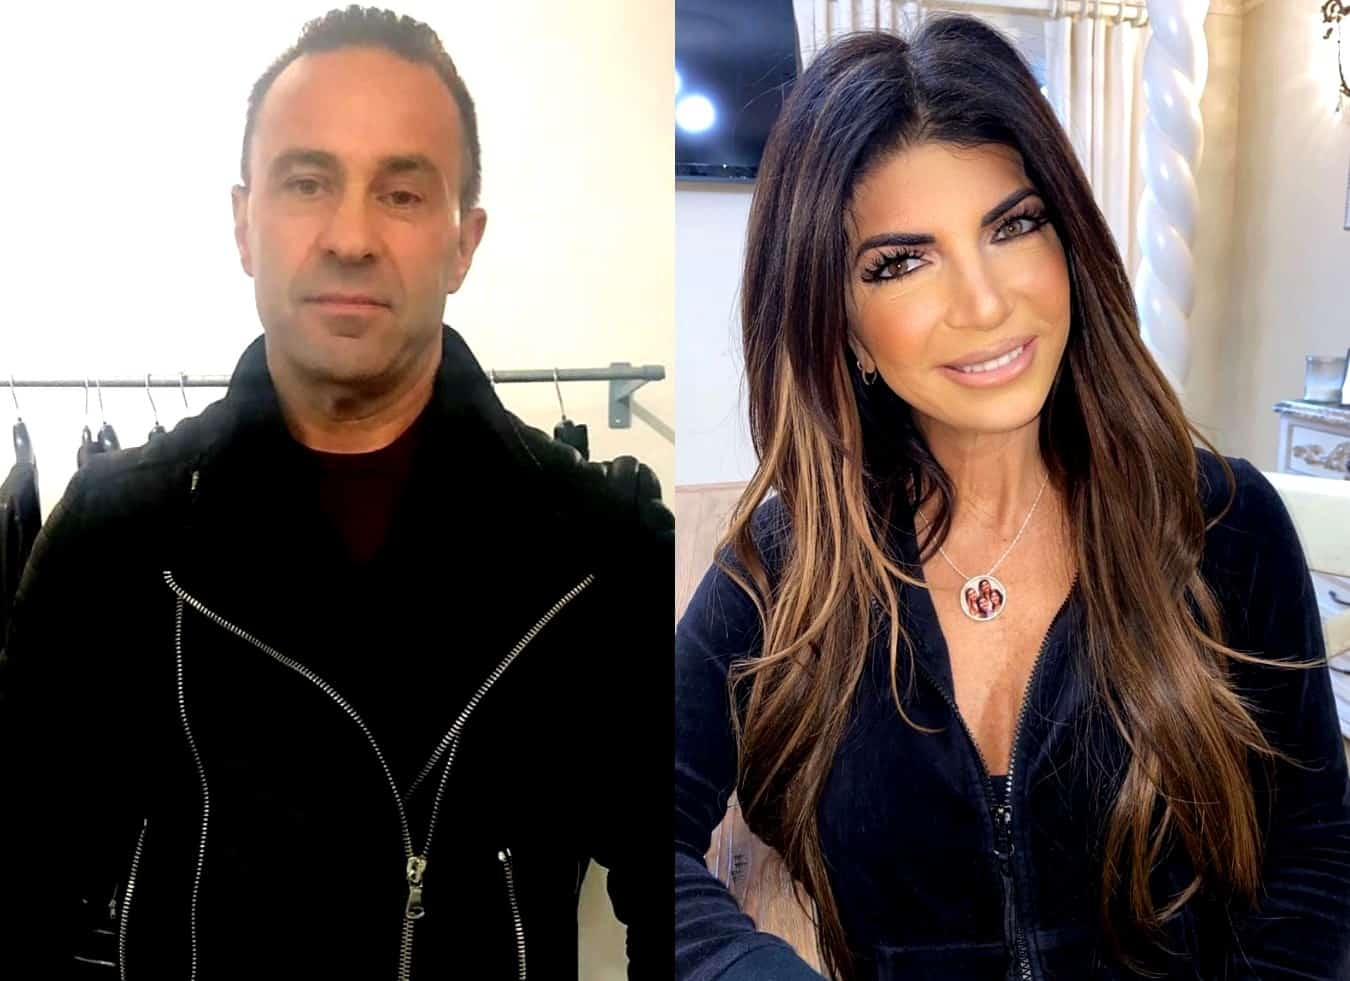 RHONJ Alum Joe Giudice Begins His Celebrity Boxing Career, What Does Ex Teresa Giudice Think About It?